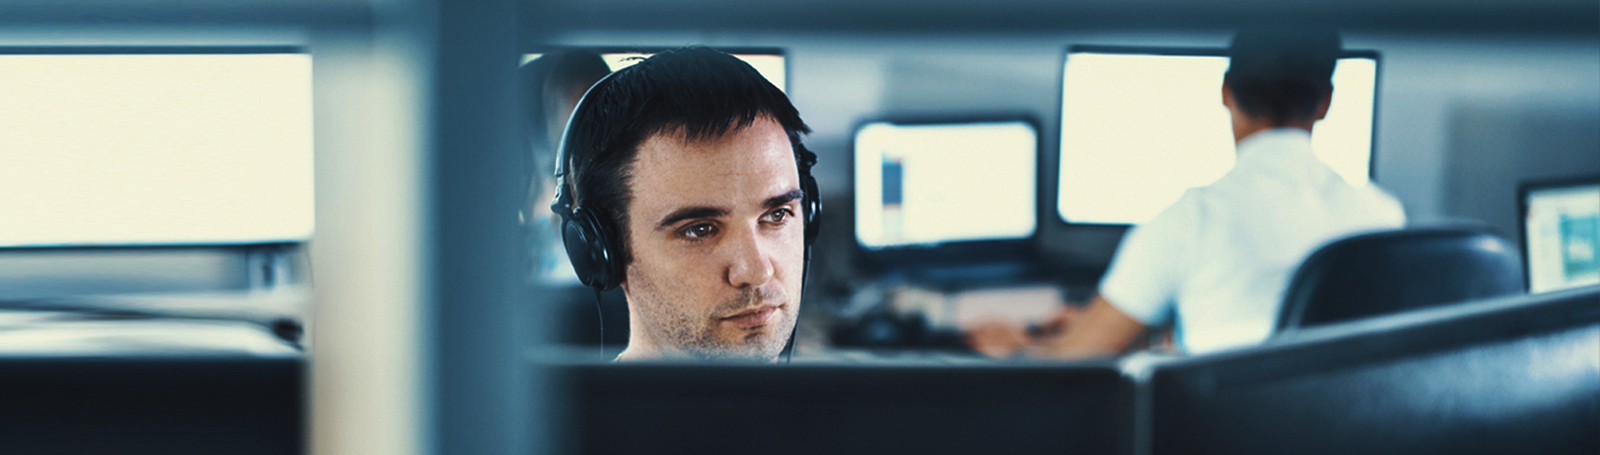 male-working-on-computer-with-headphones